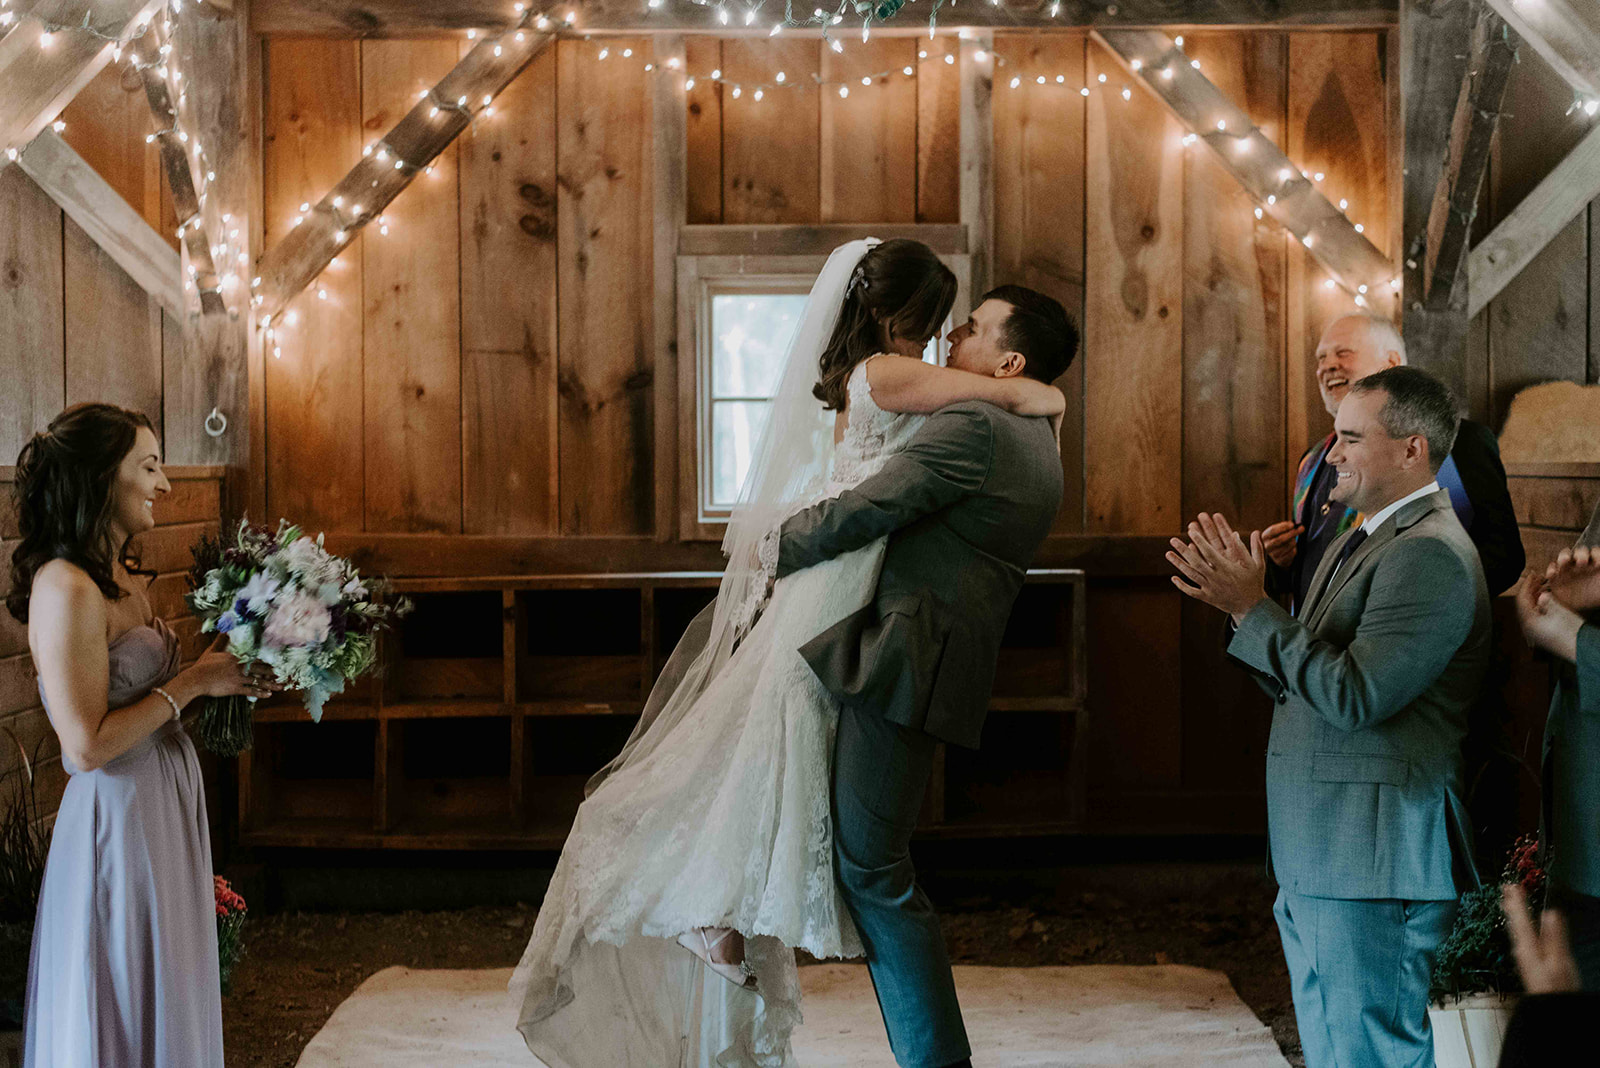 New Hampshire wedding photographer for a boho and intimate fall wedding at Stonewall Farm, Keene, NH